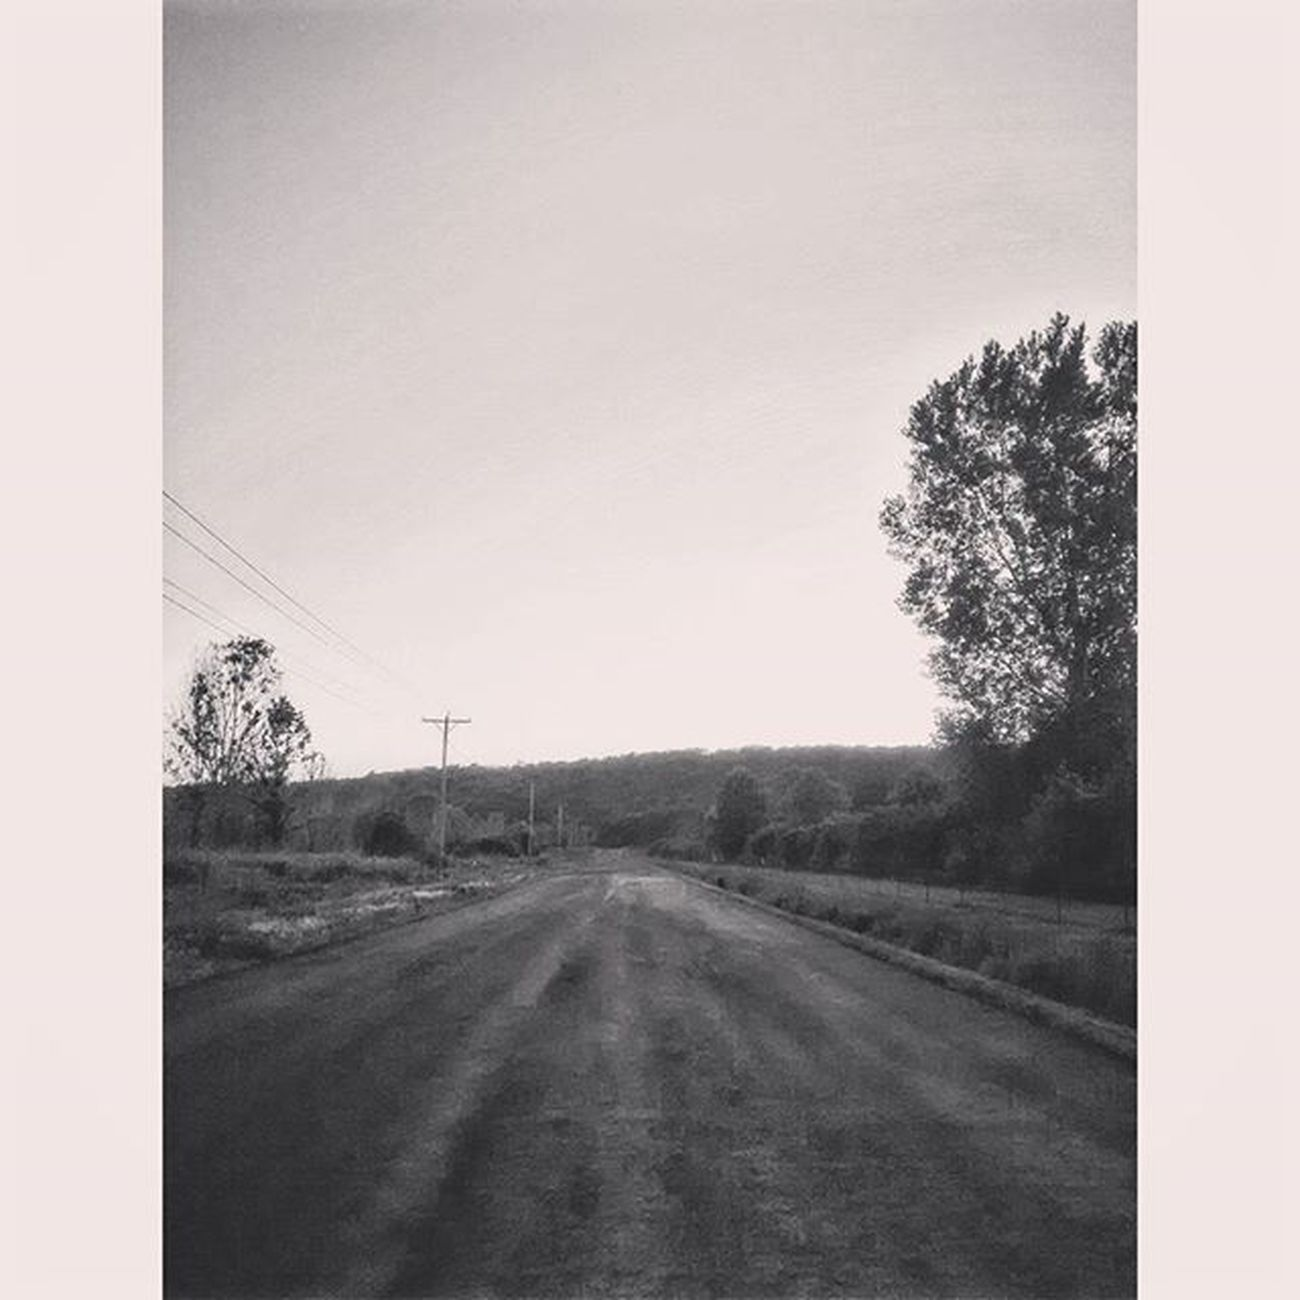 Ol country road that took me home to the place I belong........... Lol Ks_pride Kansasphotographer Kansasphotos Ipulledoverforthis Trb_bnw World_bnw Bnw_sunset Bnw Bnw_captures